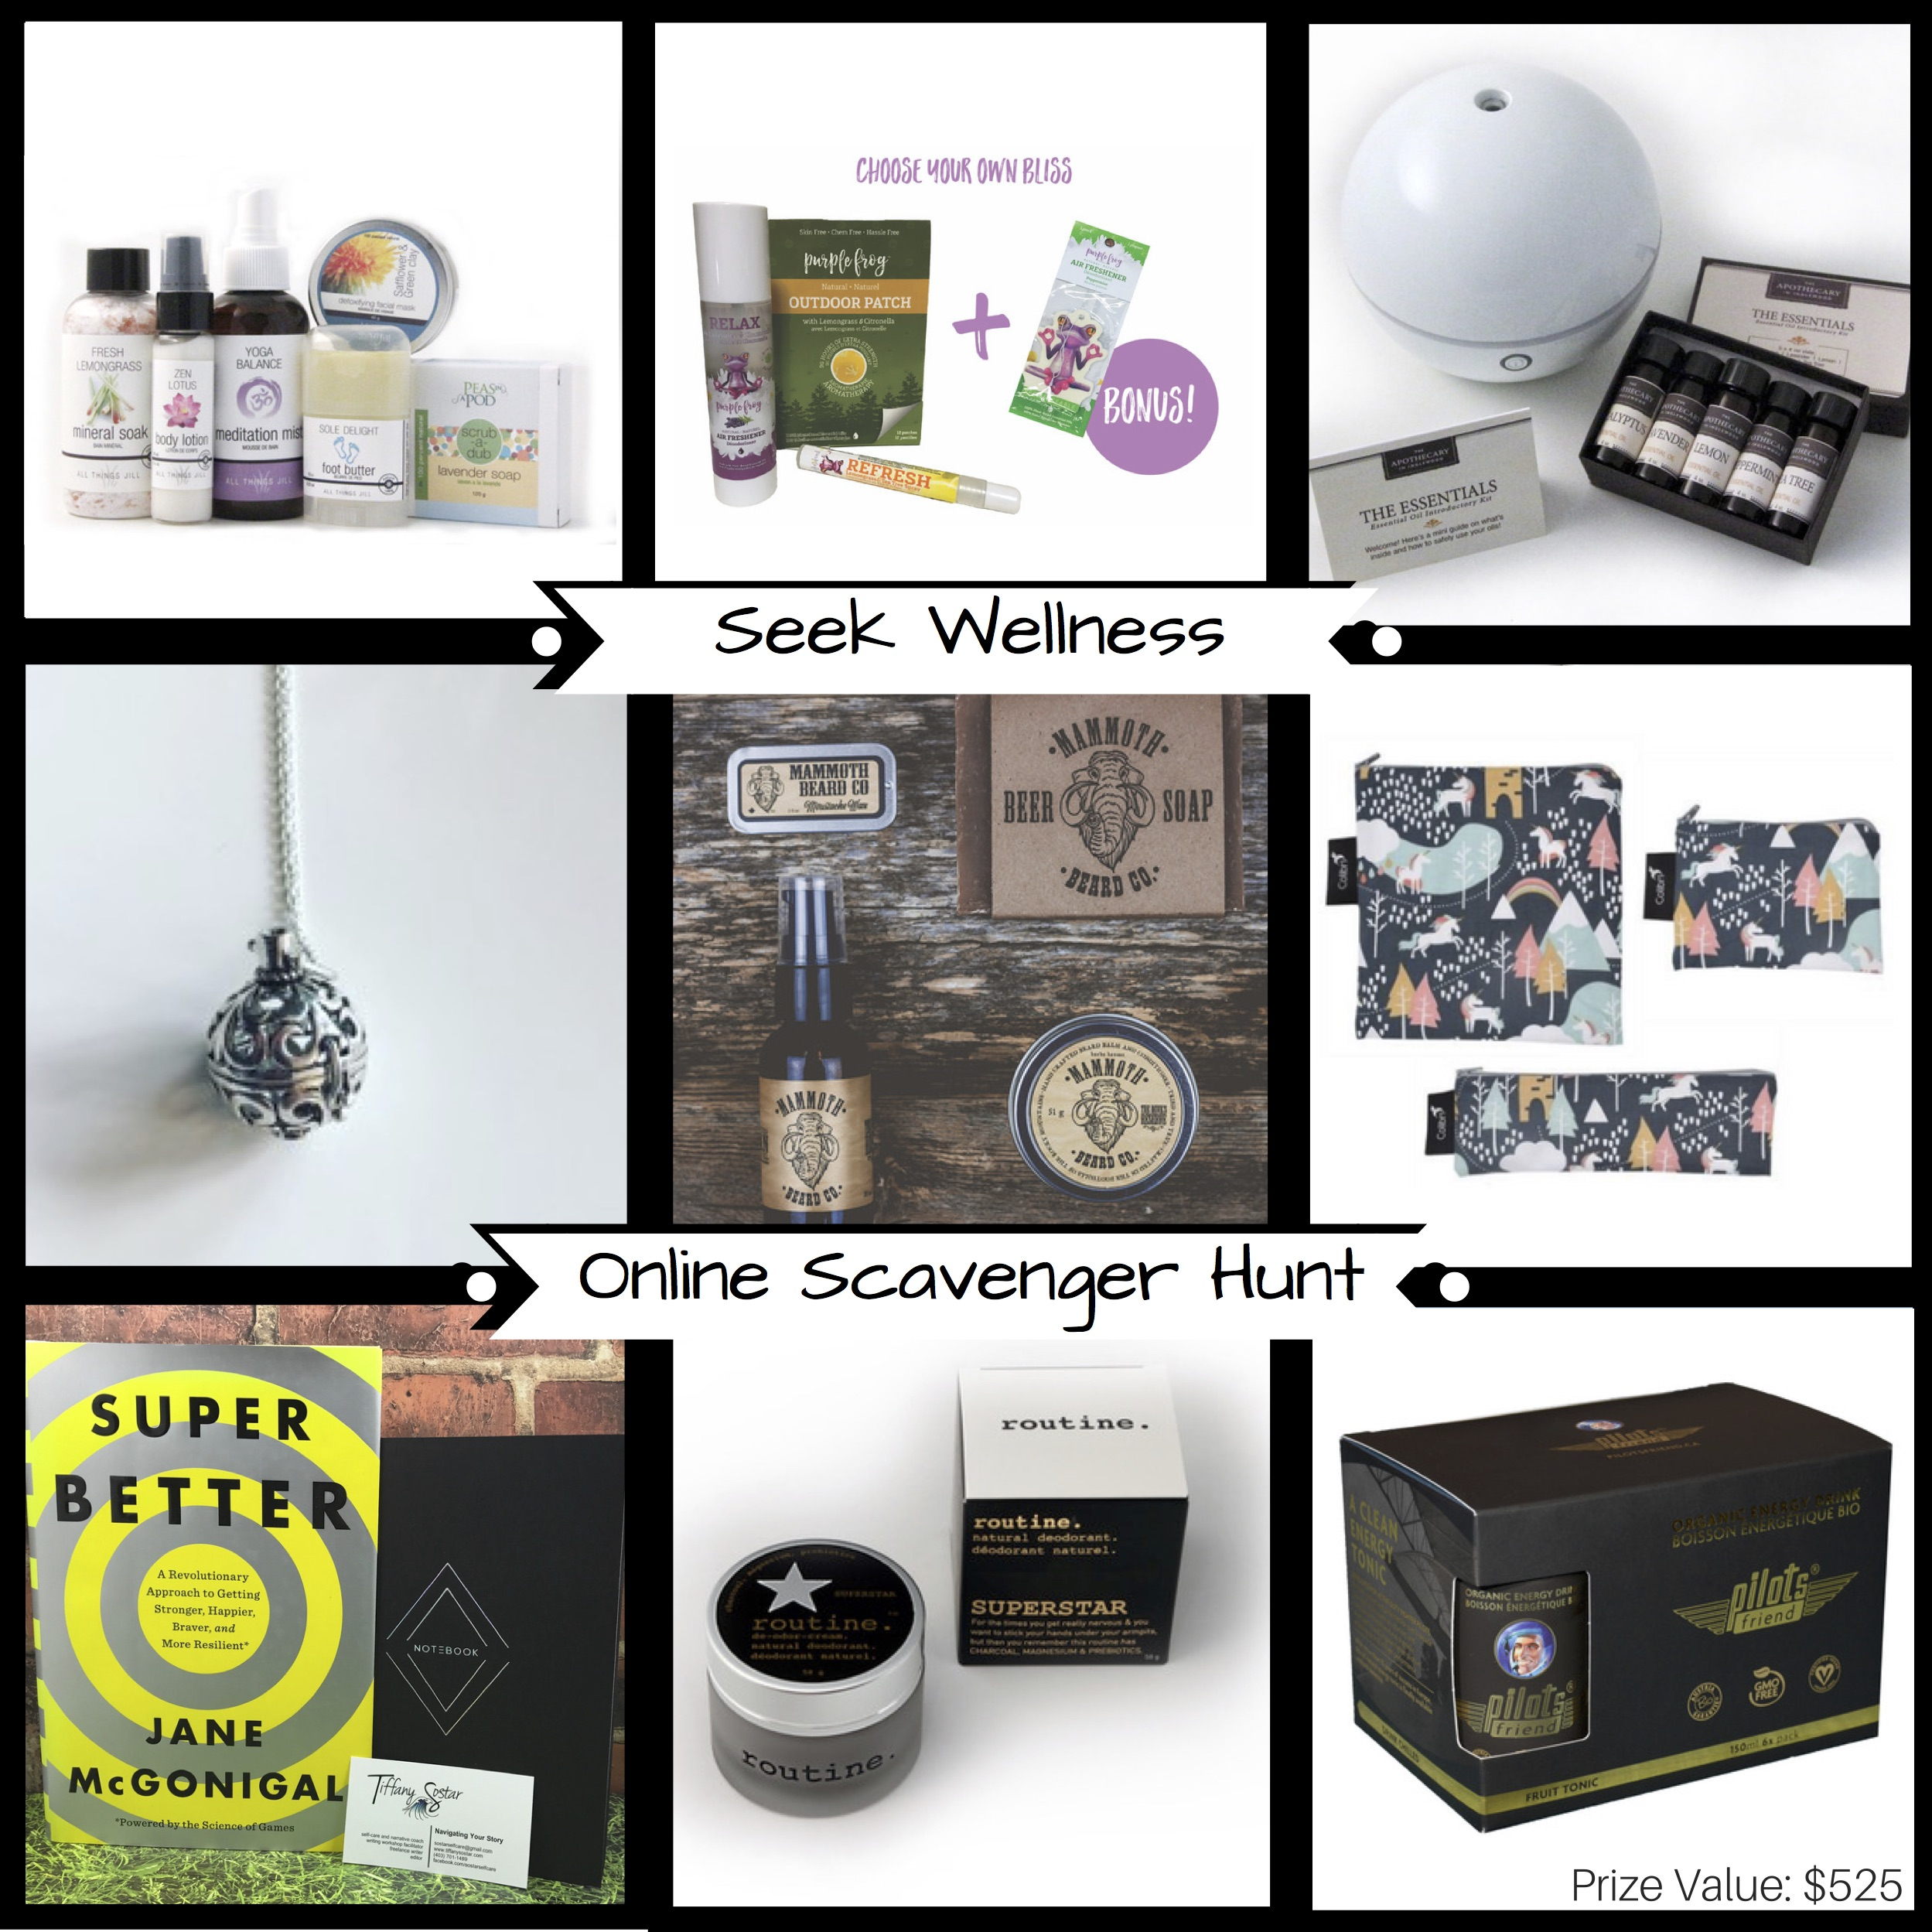 Seek Wellness Online Scavenger Hunt Prize Pack